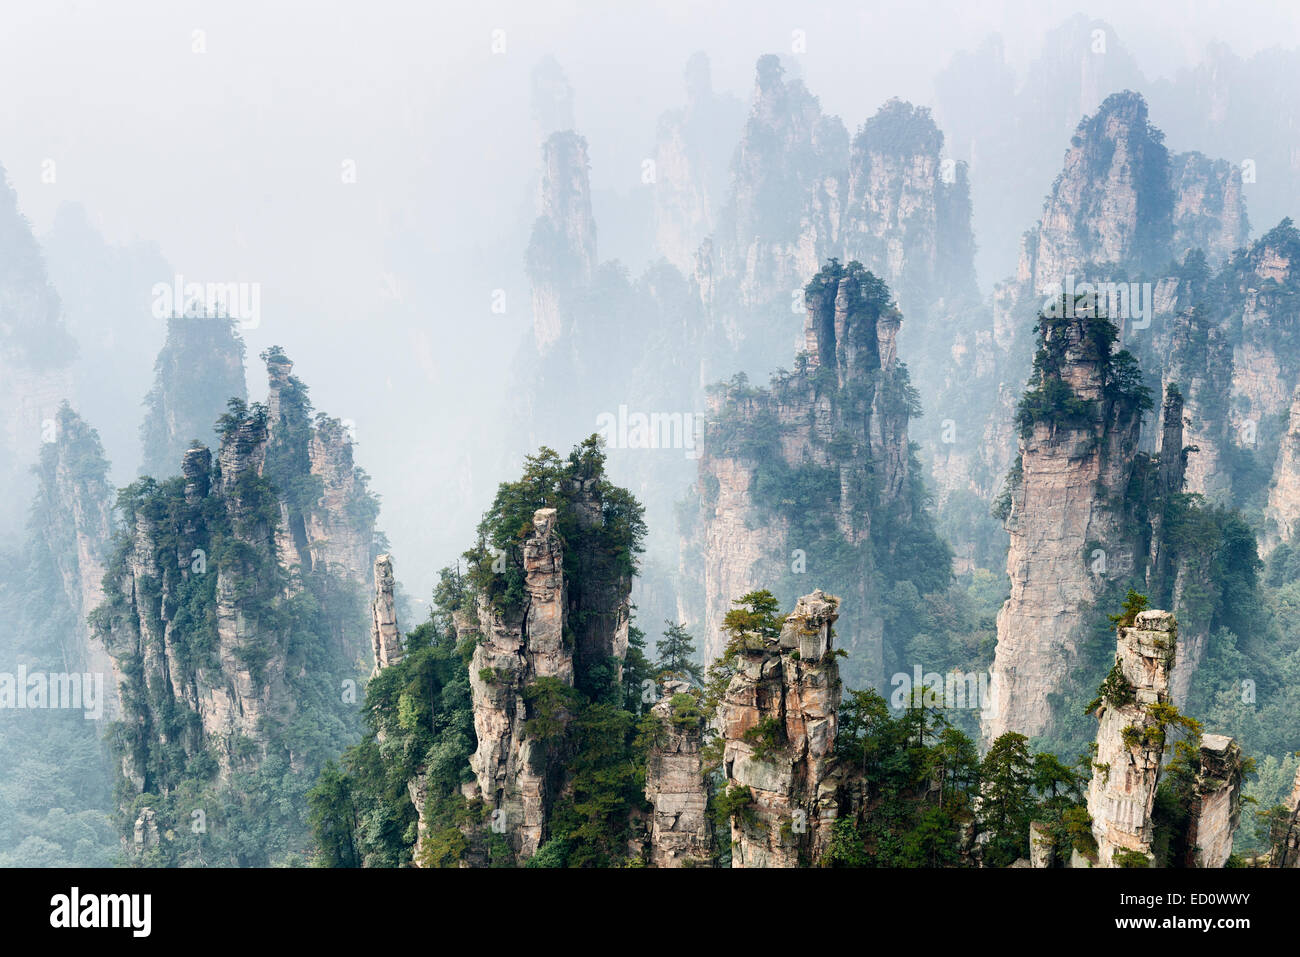 Mountain spires rising from fog at Zhangjiajie National Forest Park, Zhangjiajie, Hunan, China - Stock Image